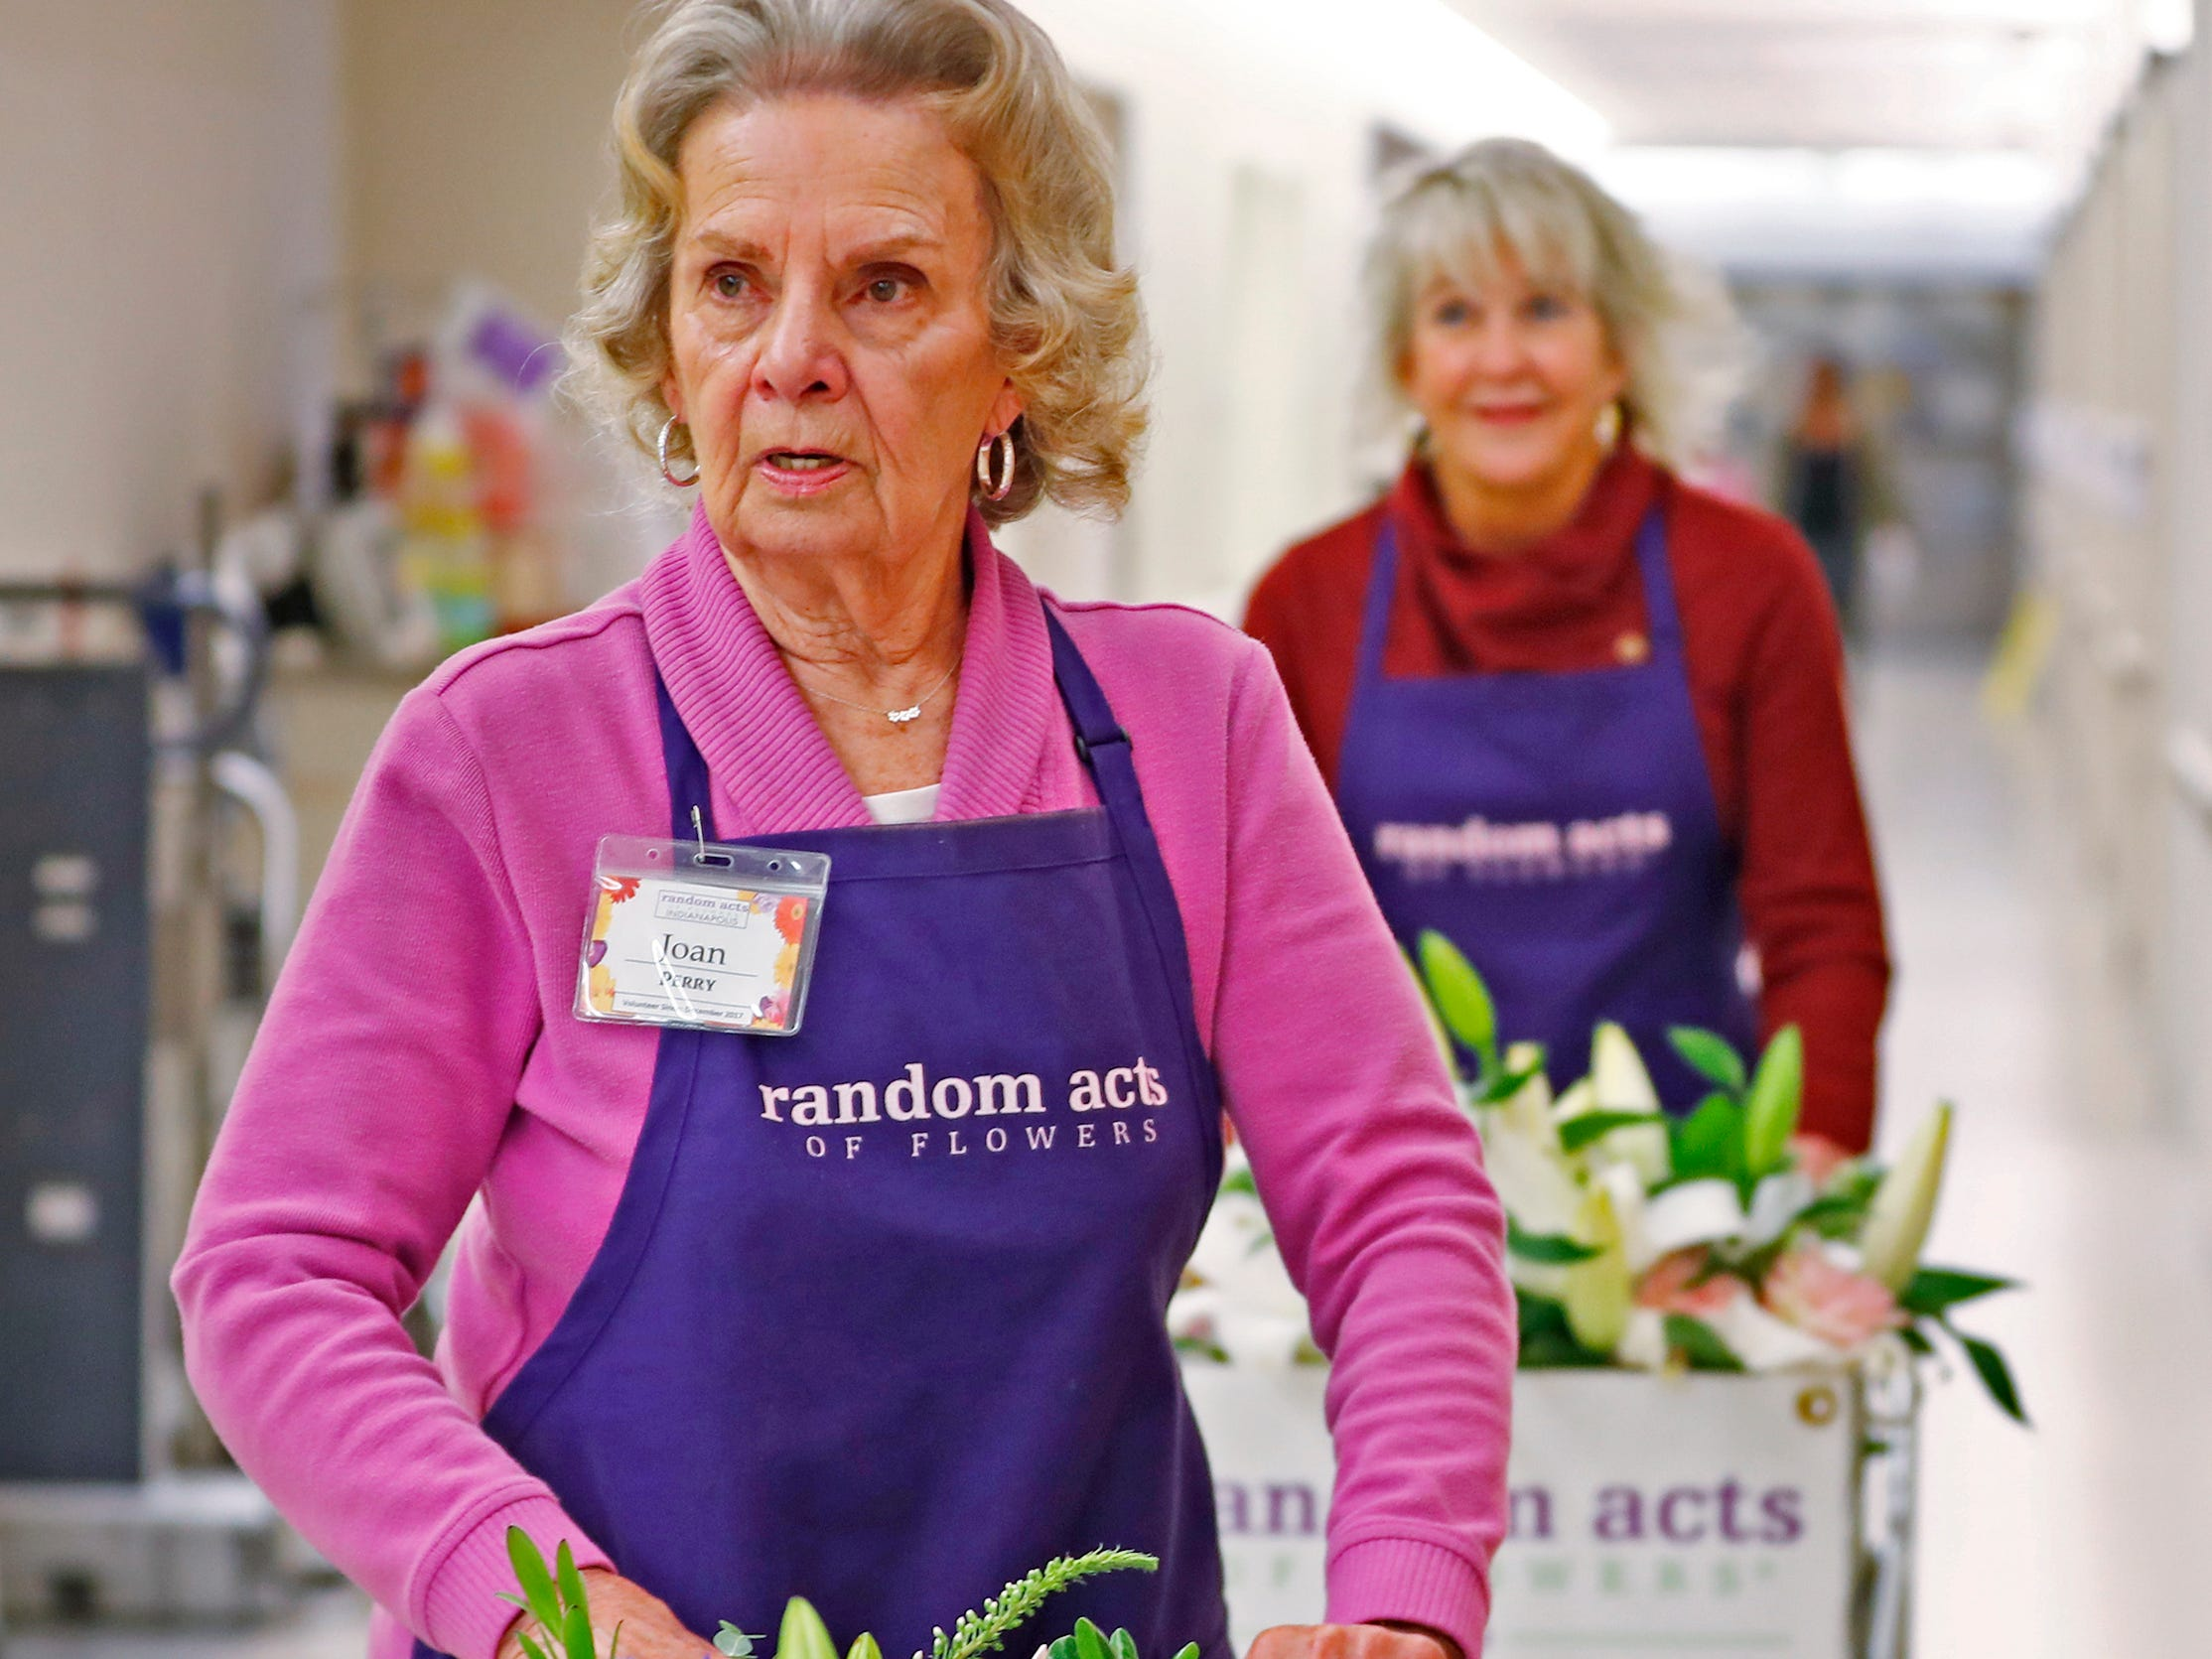 Joan Perry, left, and Claire Alexander, with Random Acts of Flowers, deliver flowers to patients, at Sidney & Lois Eskenazi Hospital, Thursday, Nov. 29, 2018.  The newest branch of the national floral nonprofit has been delivering the flowers to patients to offer hope, encouragement and smiles, for about two years.  This day, Random Acts of Flowers delivered their 50,000th bouquet.